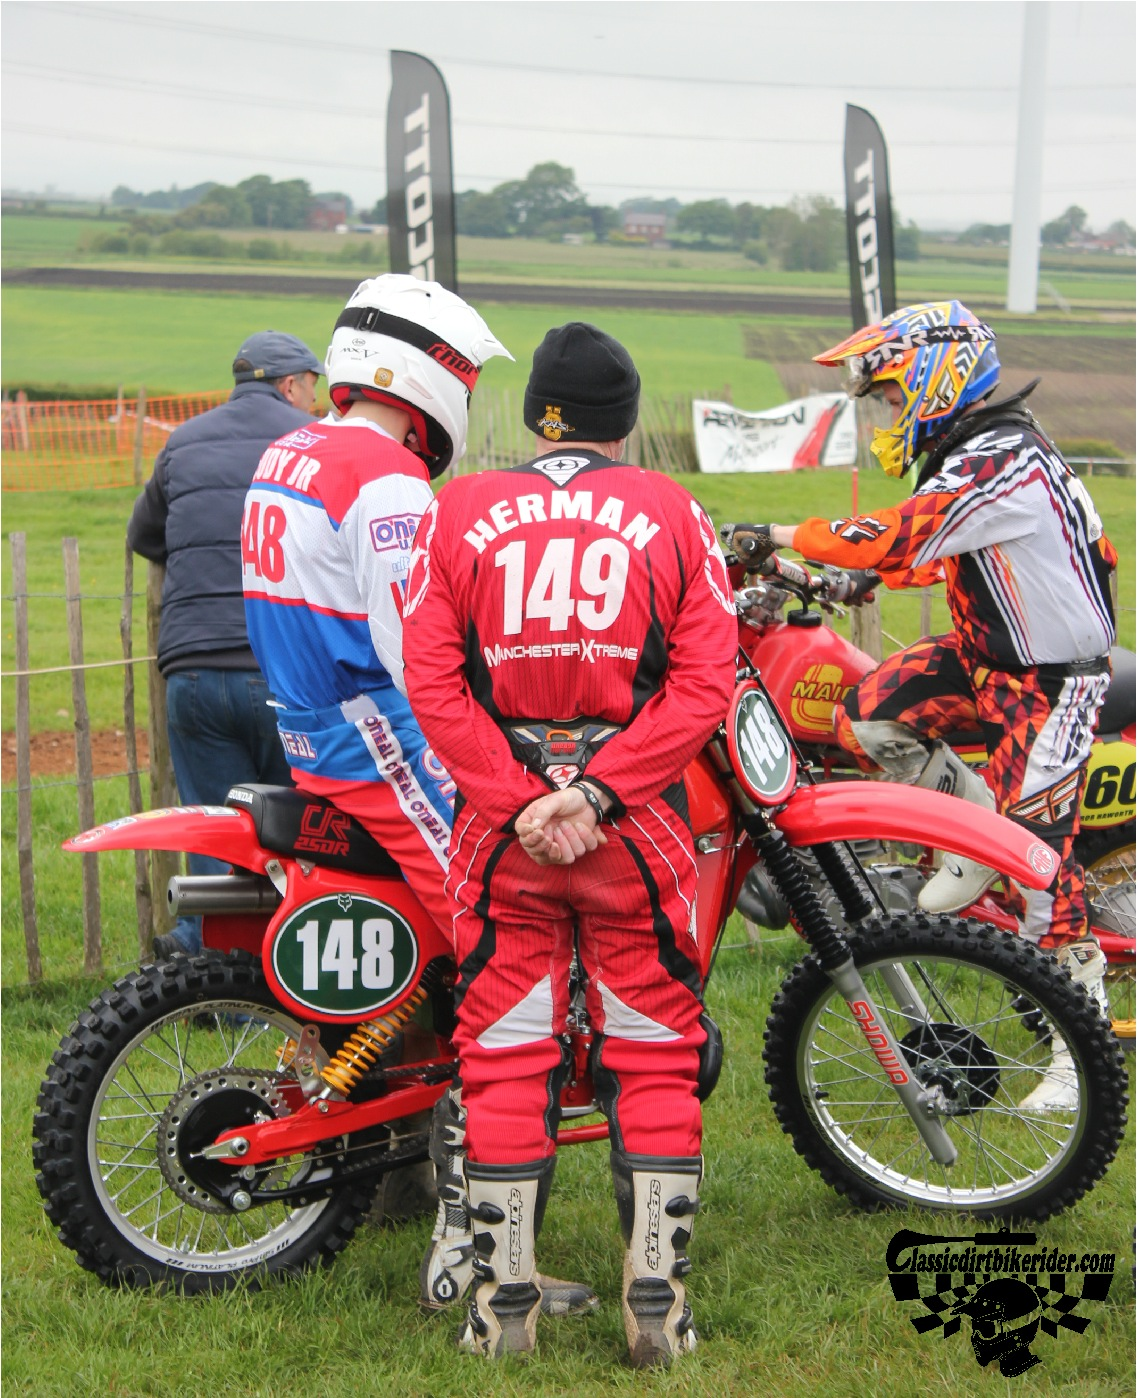 classicdirtbikerider.com-national-twinshock-championship-2015-Garstang-riders get ready for practice 18